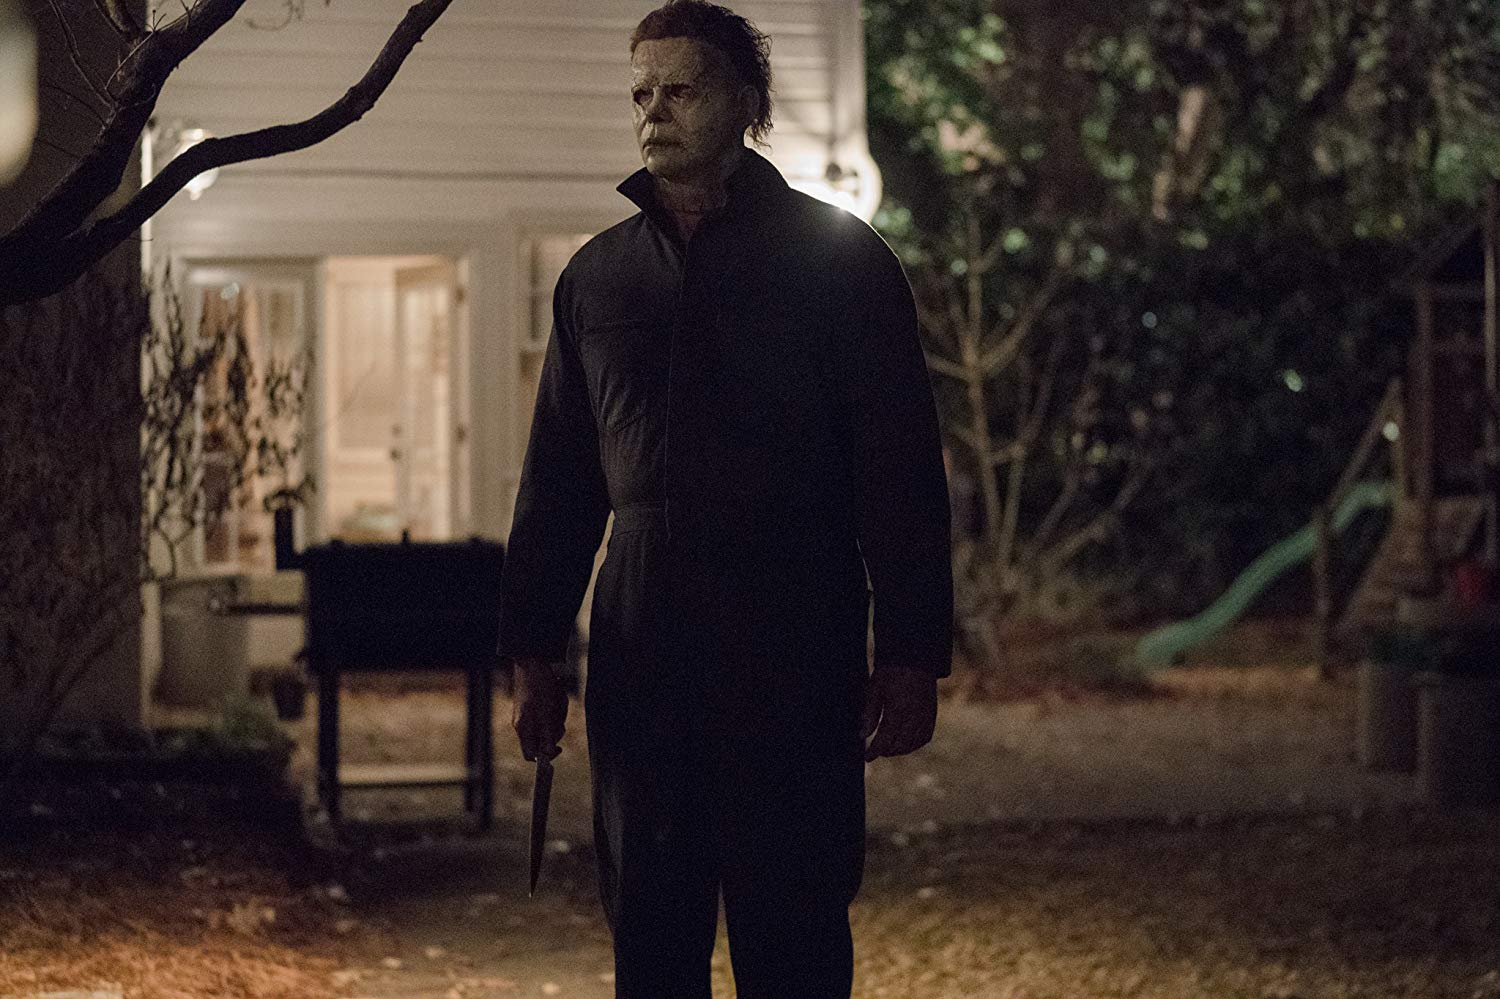 Halloween 2018 Alternate Ending.Halloween 2018 Ending Explained Spoilers Is Michael Myers Dead